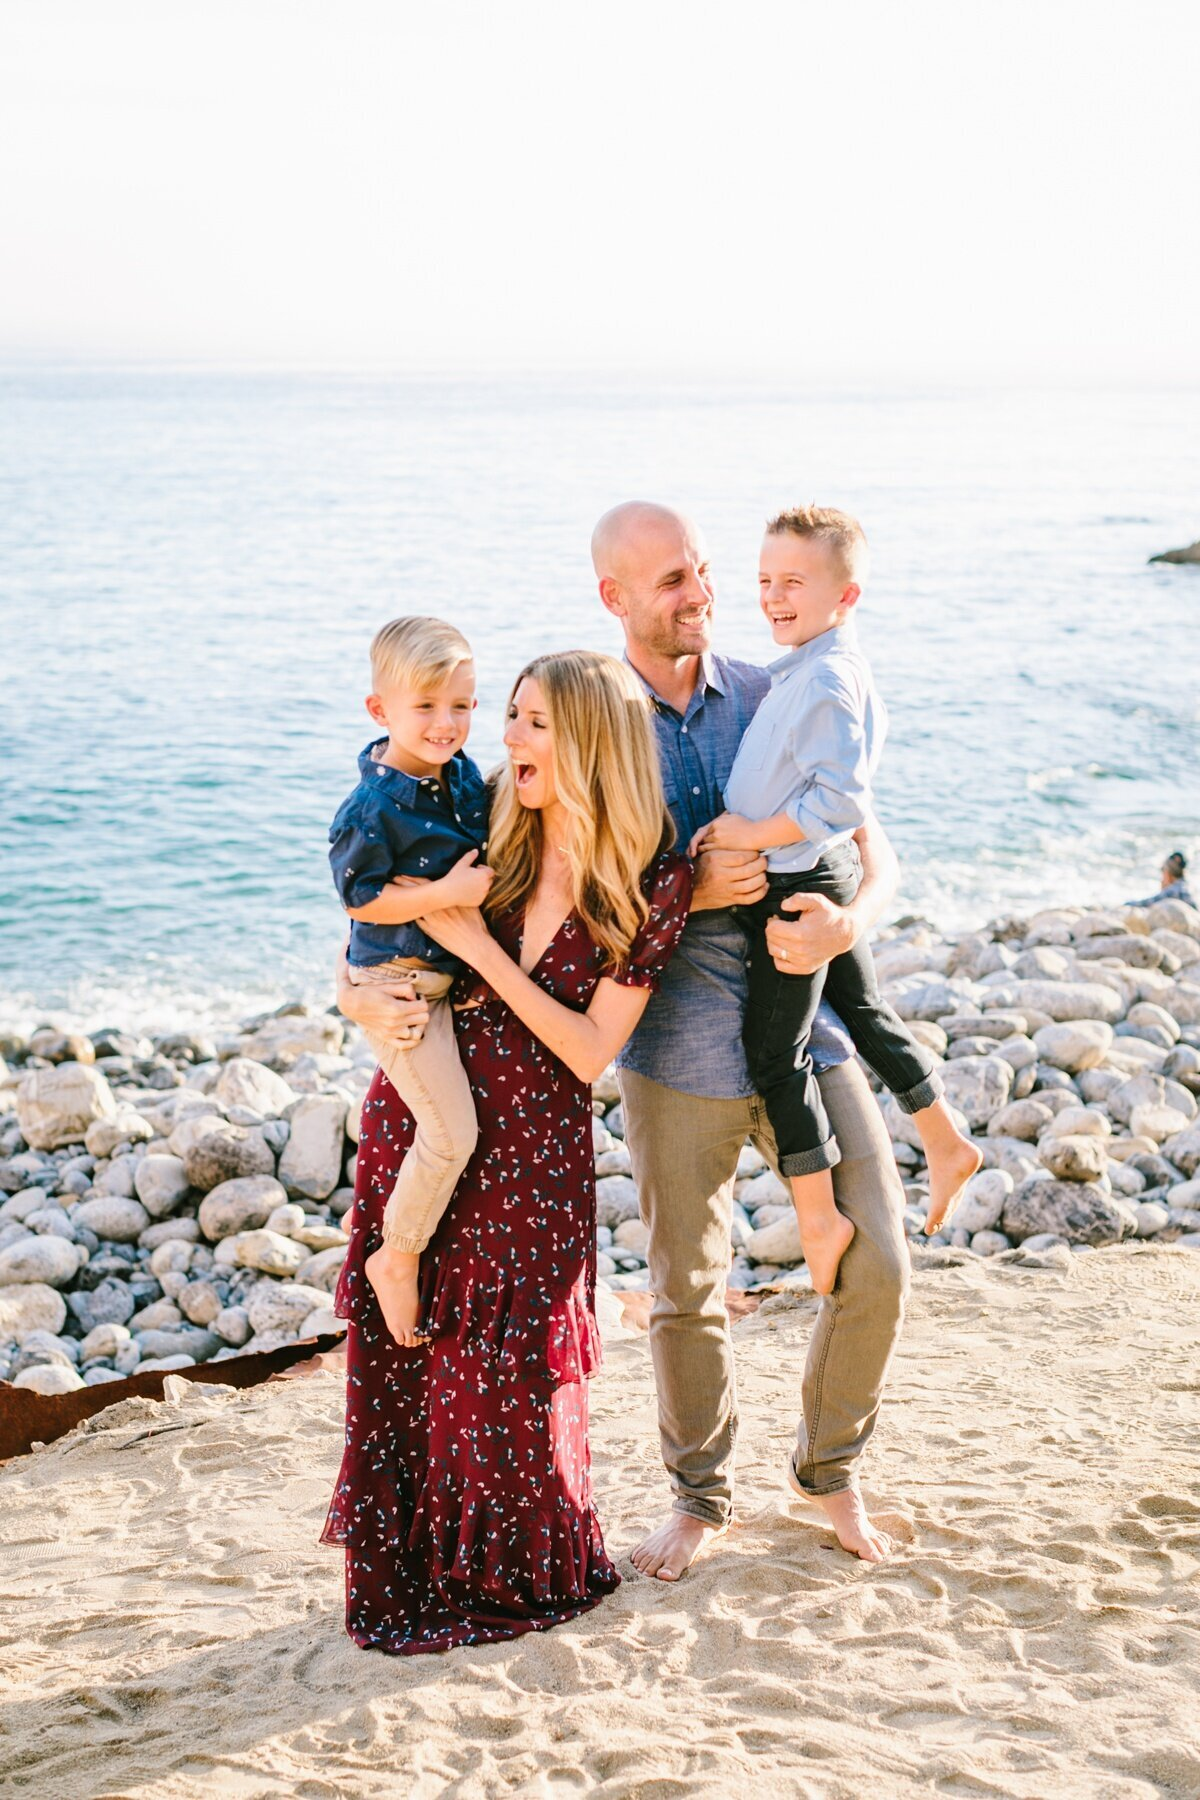 California Family Photography-Texas Family Photographer-Family Photos-Jodee Debes Photography-19